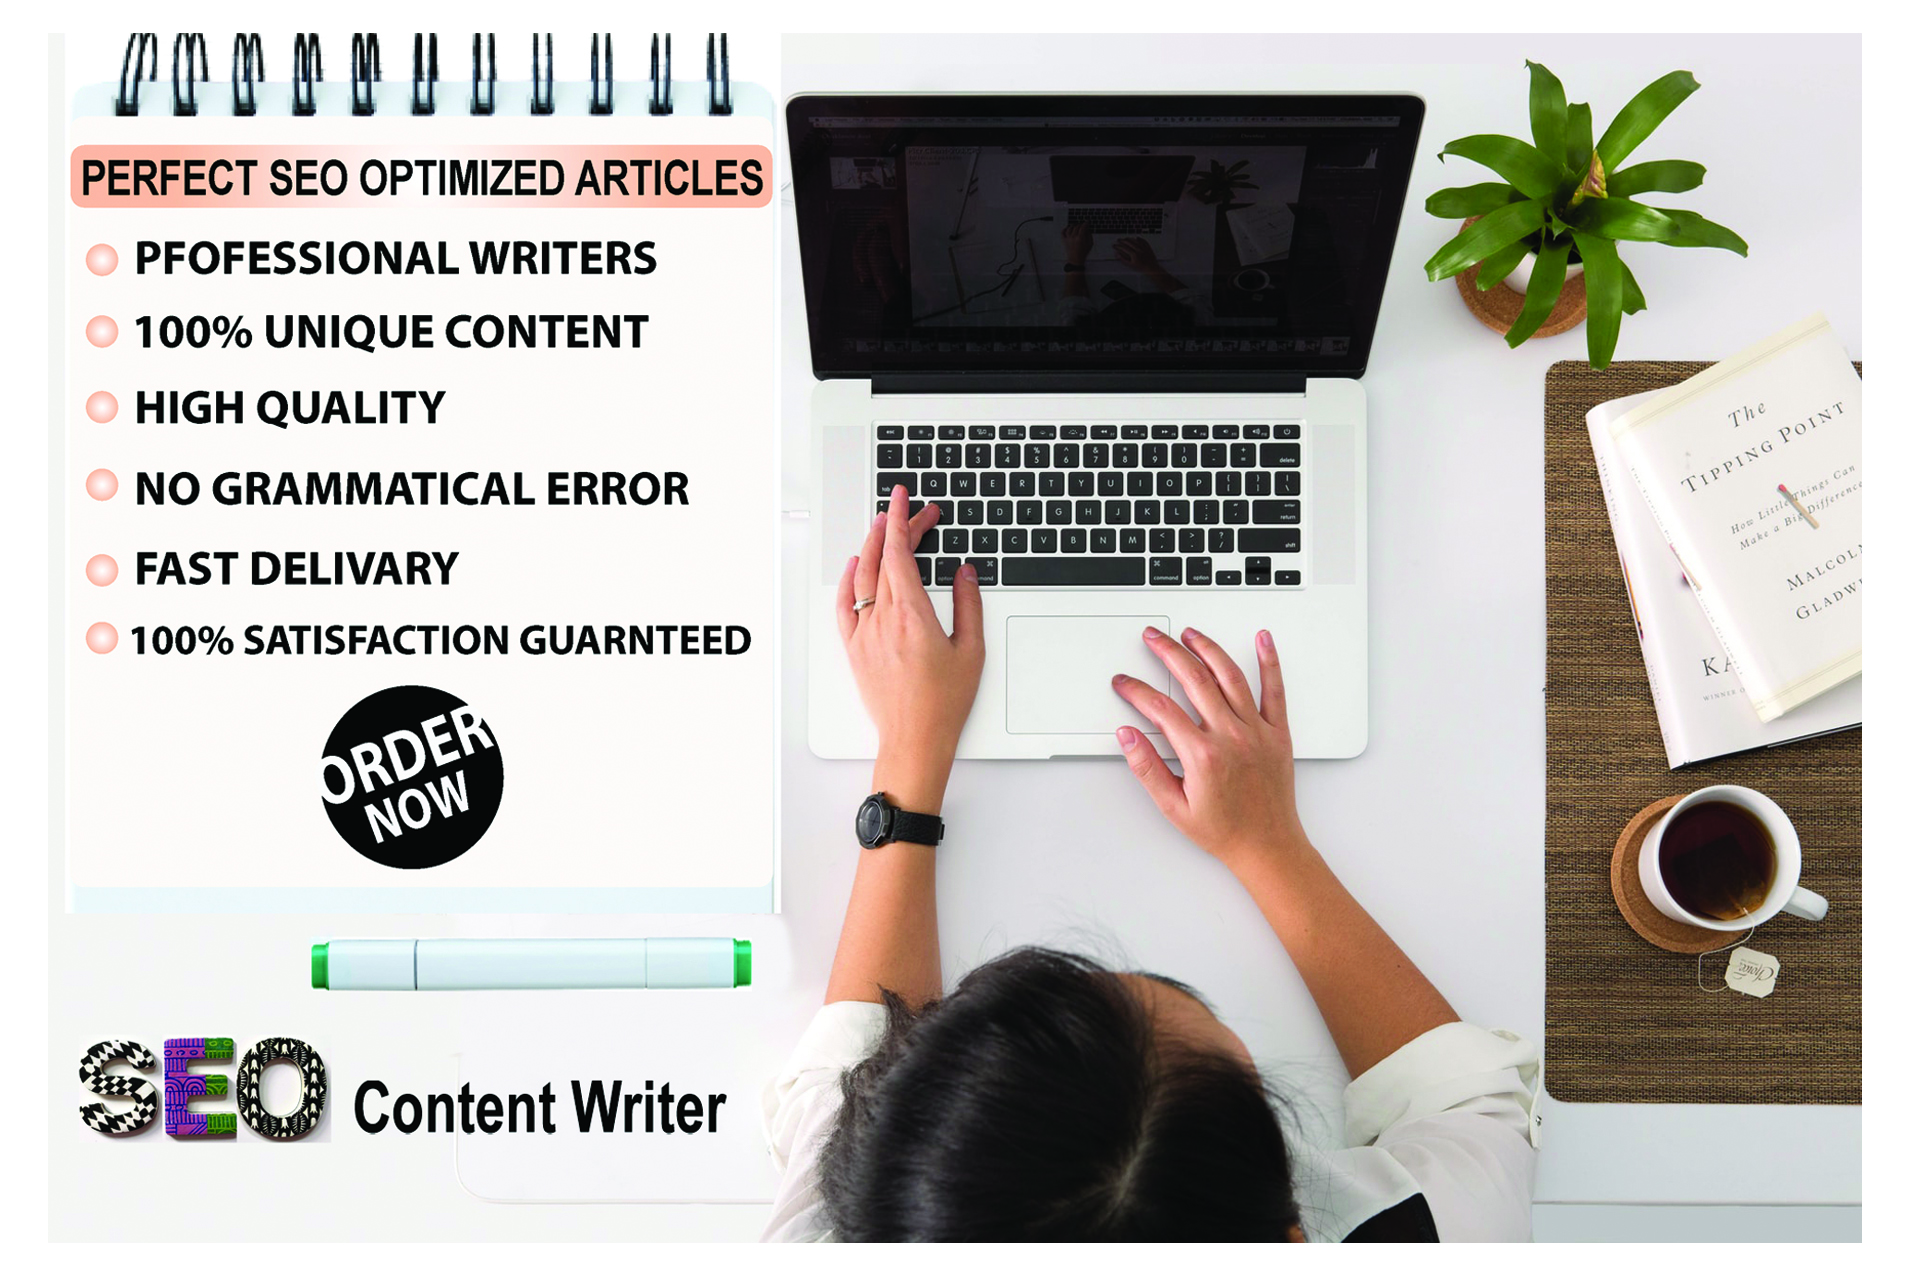 I Will Write Perfect SEO Optimized Content 600 to 1000 Unique Words For Your Website or Blog